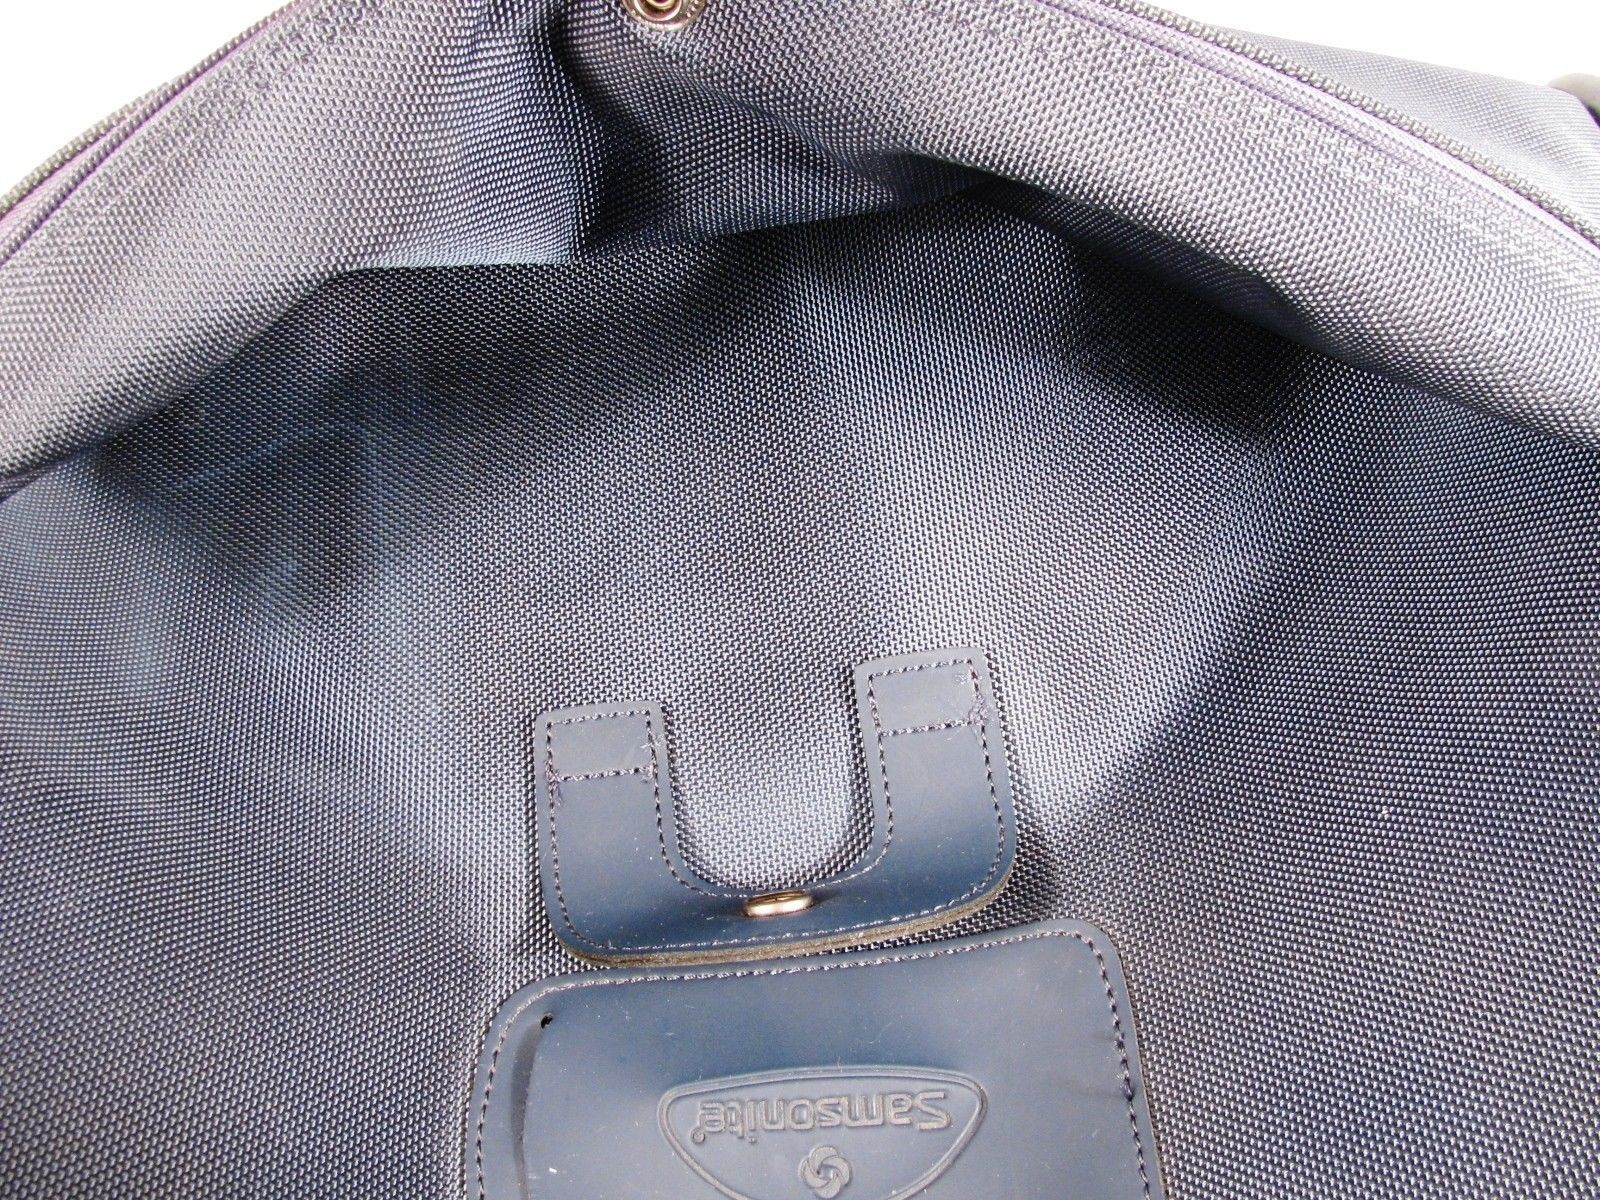 Samsonite Duffle Bag Overnight Travel Carry On Organizer Blue Nylon